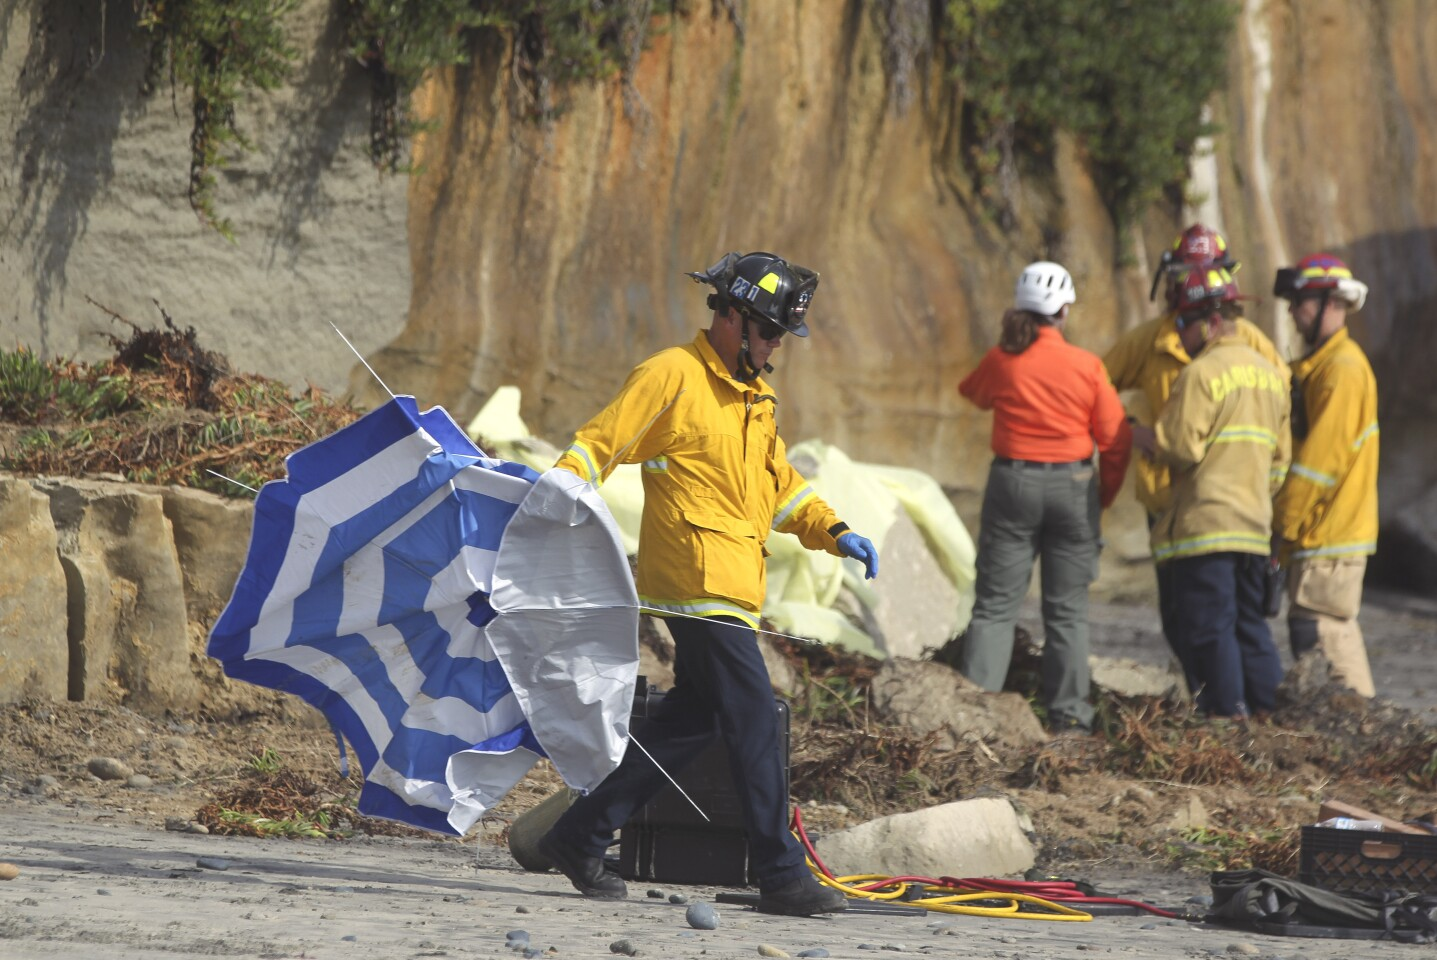 A firefighter carries away a beach umbrella from the area where a section of oceanfront bluff collapsed, background, killing one woman and injuring three just north of the Grandview beach access stairway in Leucadia on Friday, August 2, 2019 in Encinitas, California.